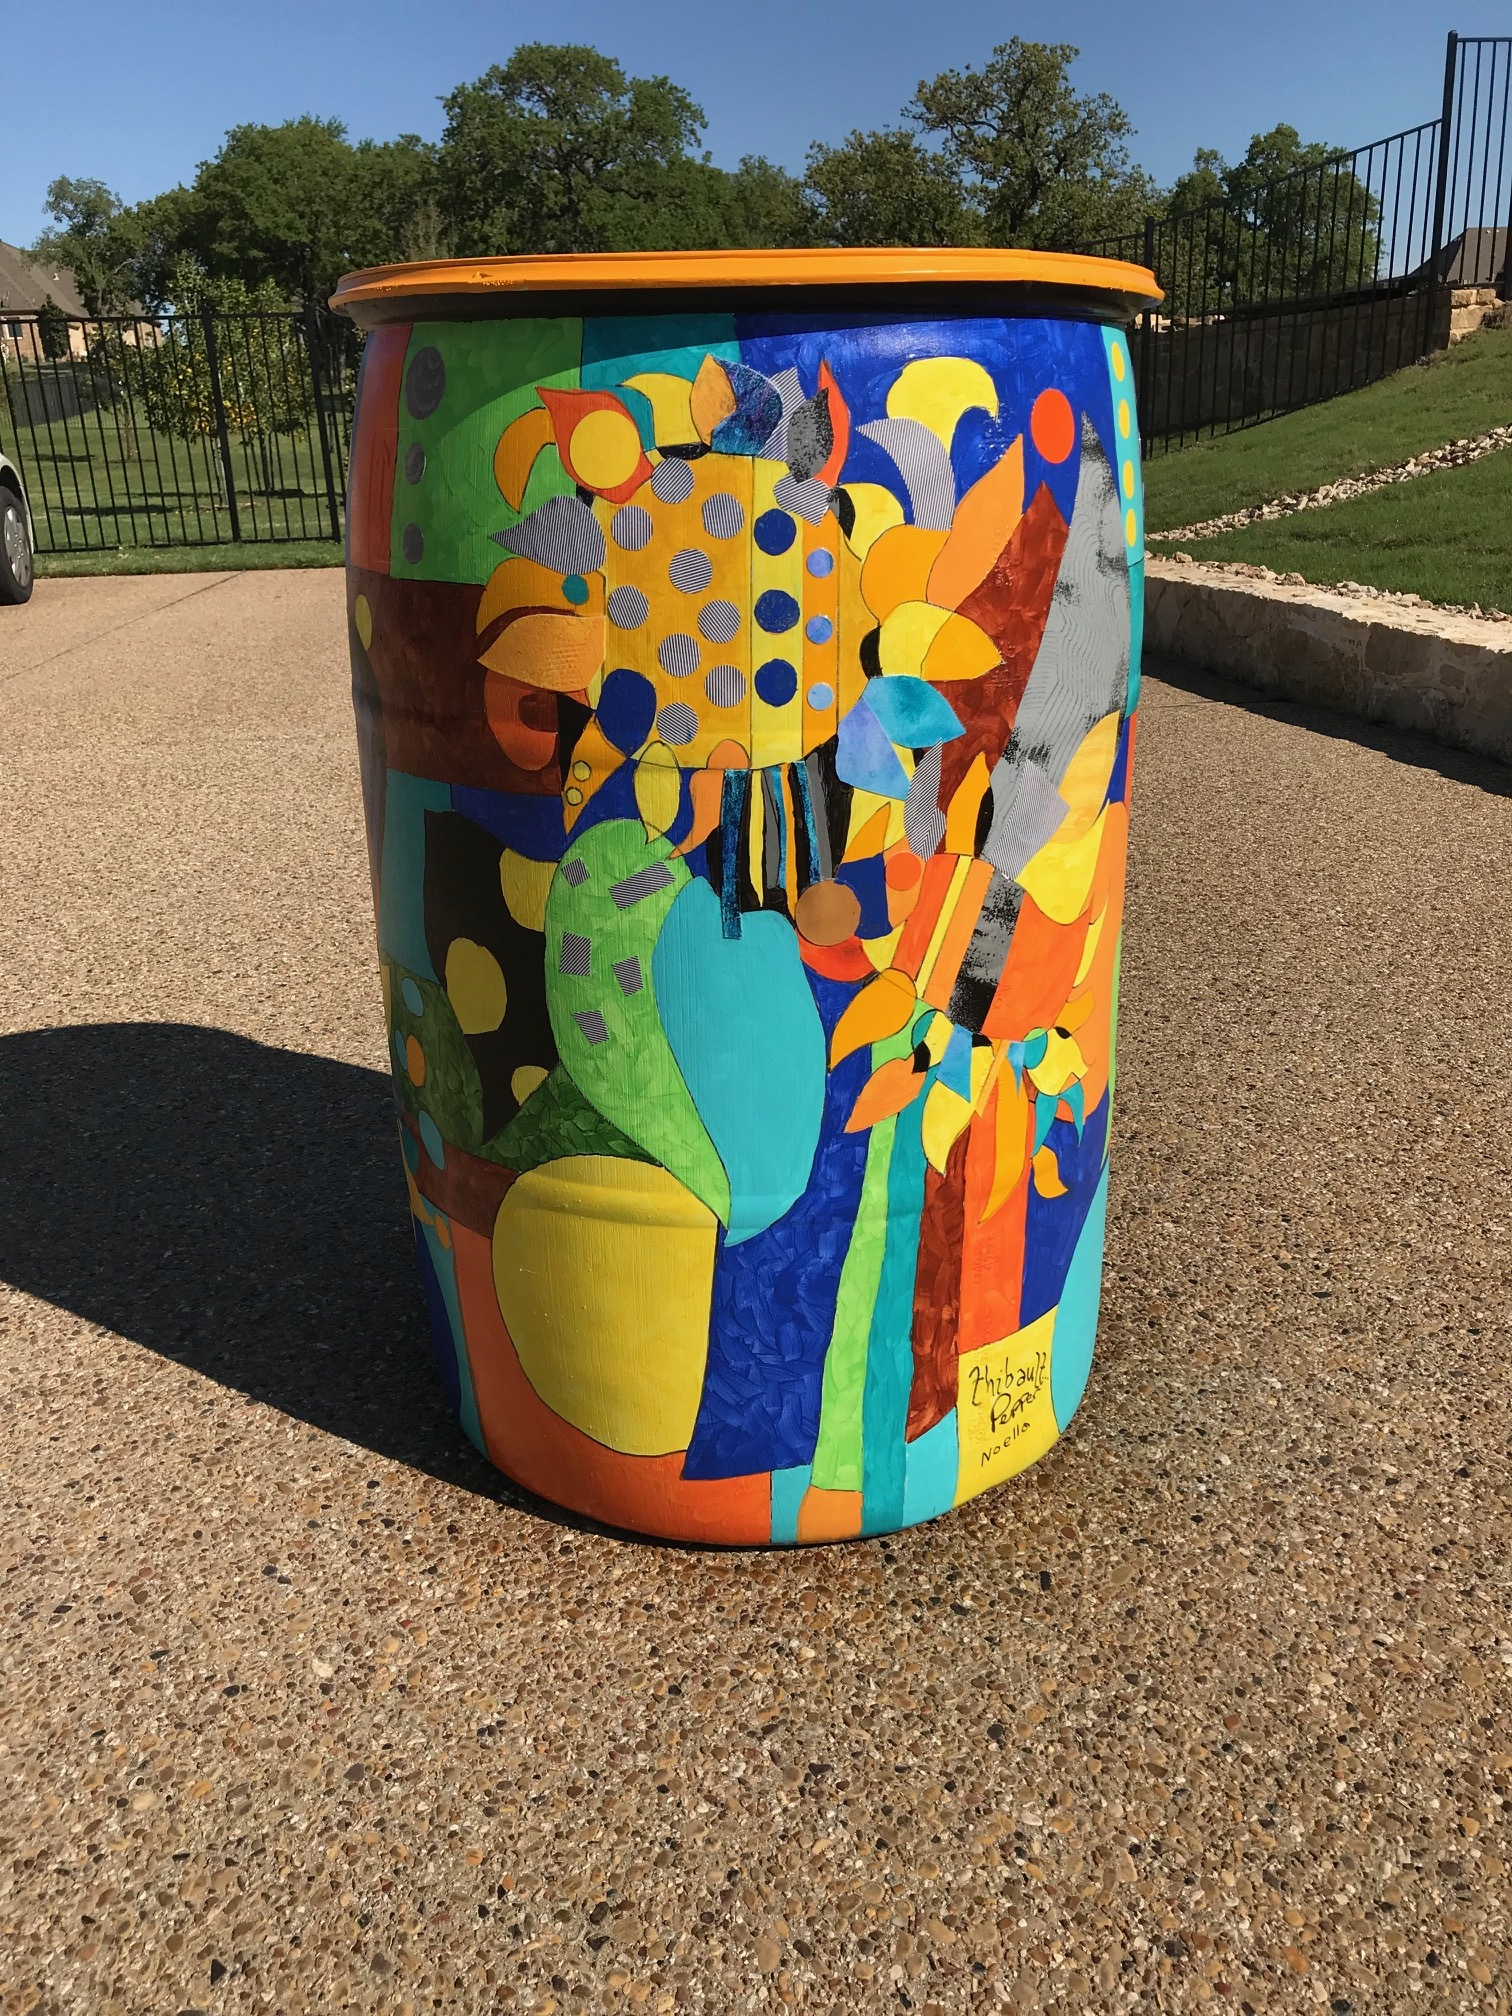 This is the finished barrel painted by Pepper Crary and Deanna Thibault for the Earth Day Project.